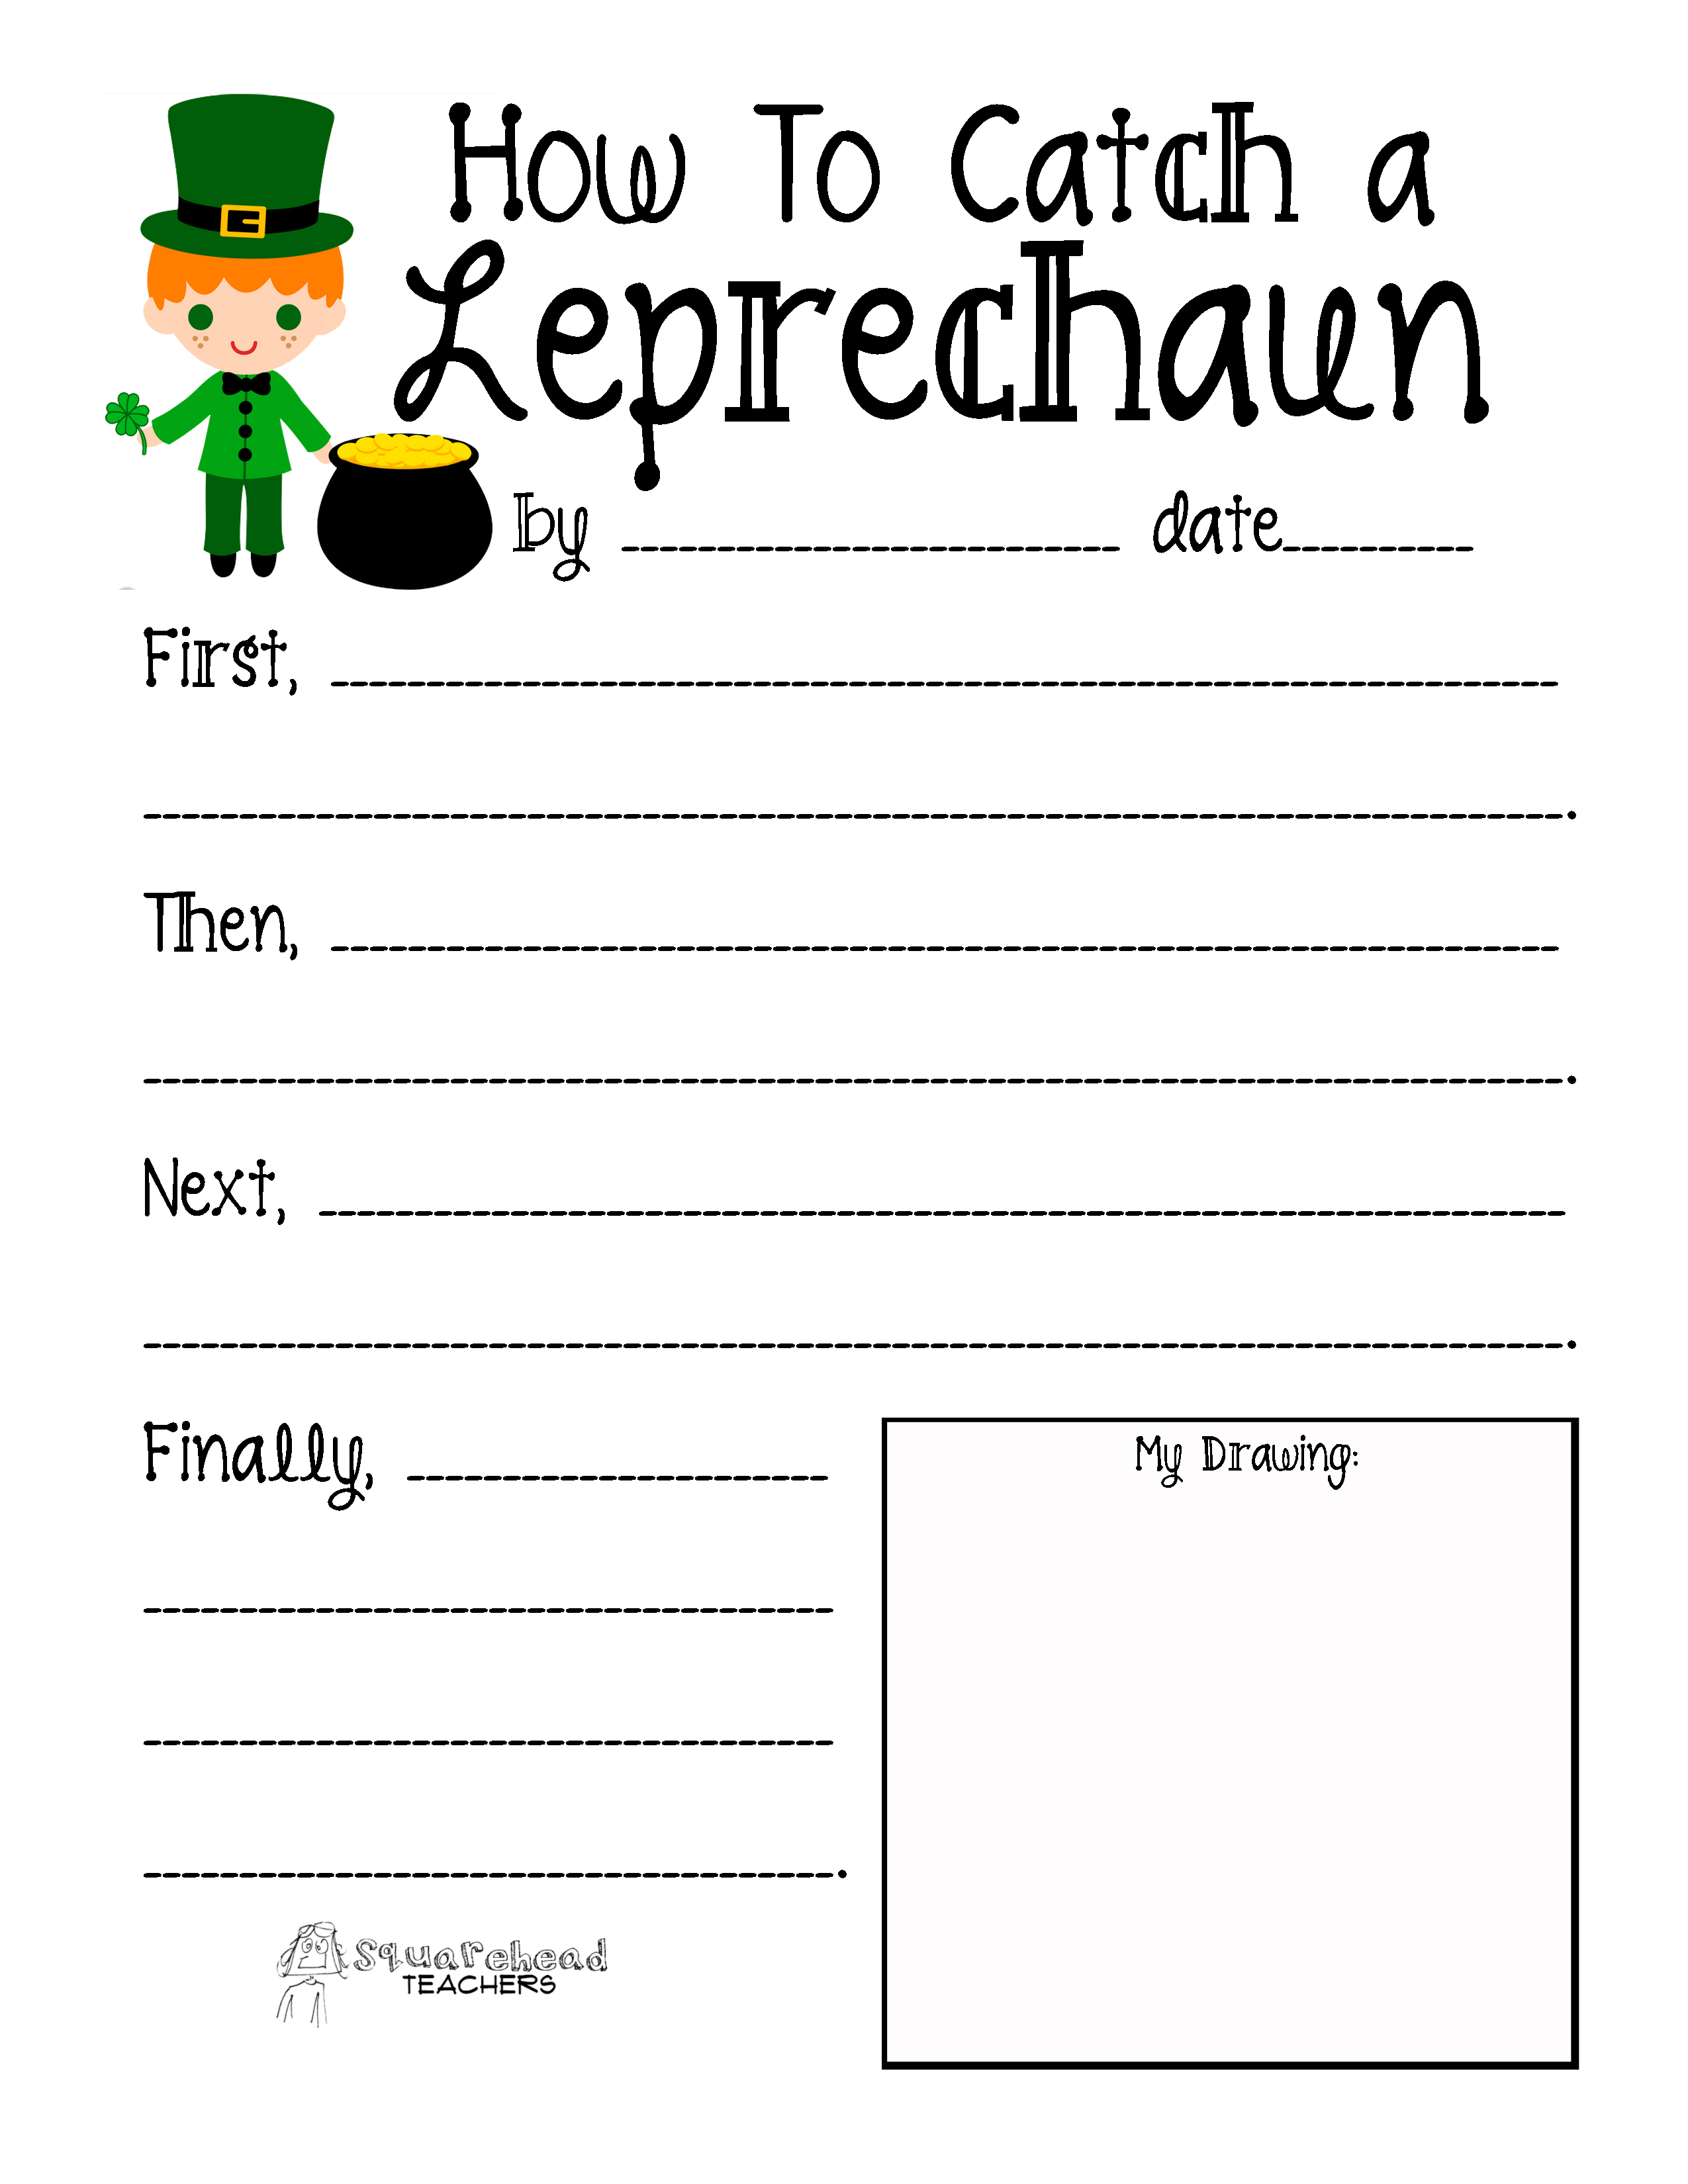 How To Catch A Leprechaun Updated